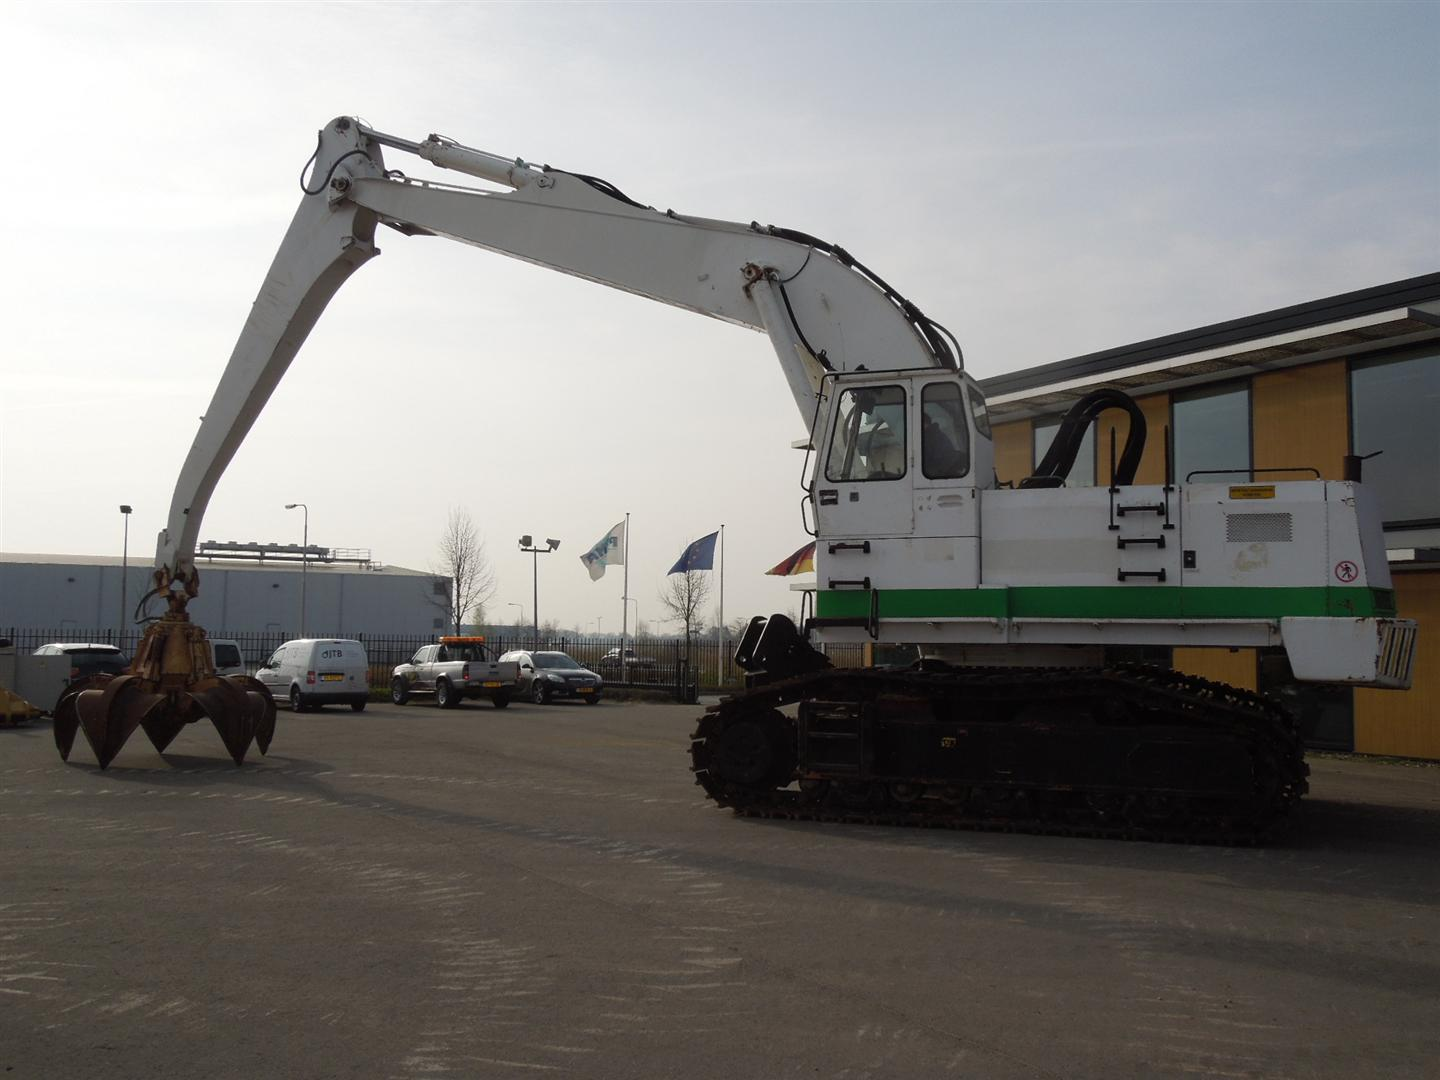 Liebherr R974 – Year 1992 – Used Liebherr Material Handling Tracked Excavator For Sale